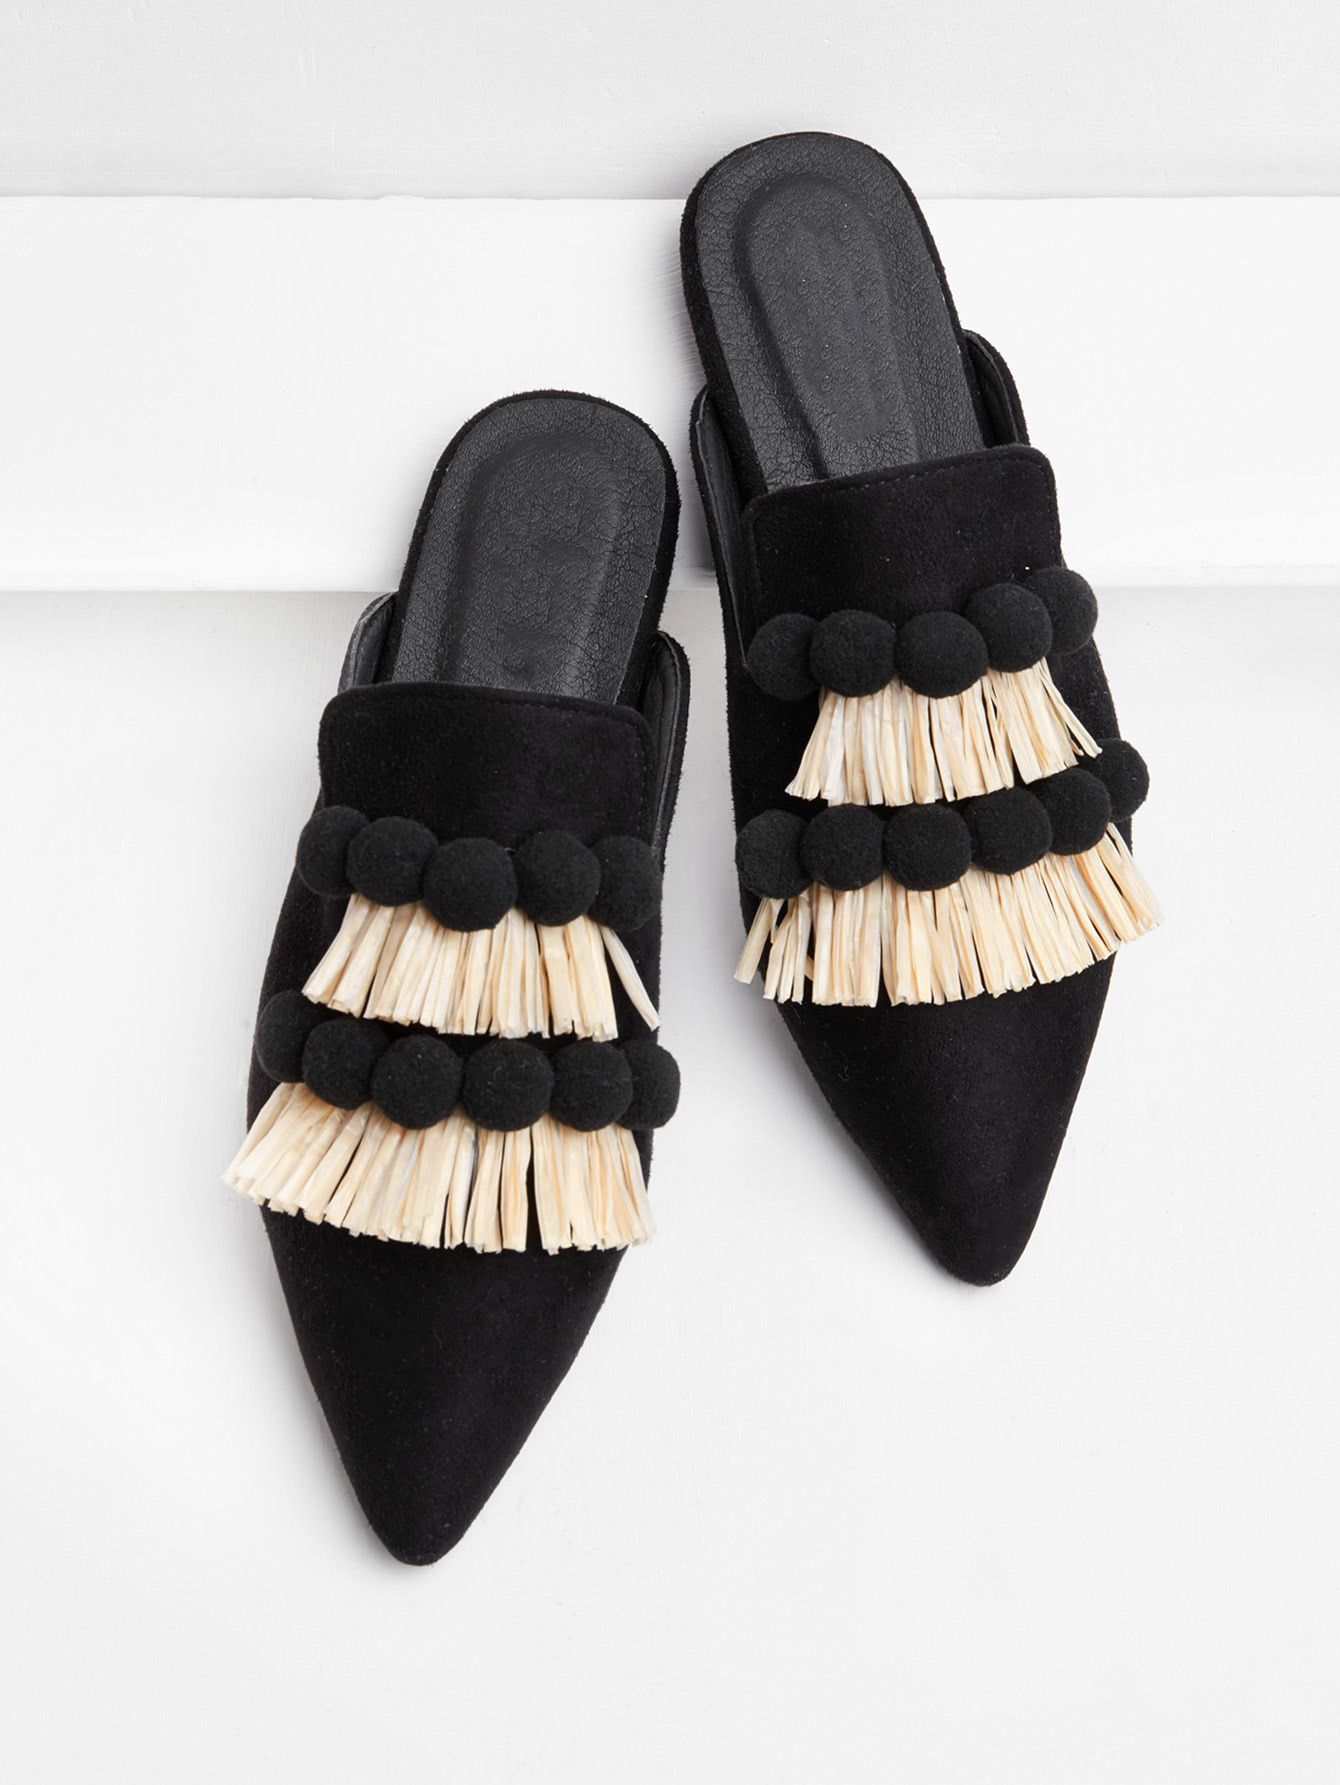 Women Mules in black leather with pointed toe, fringe and